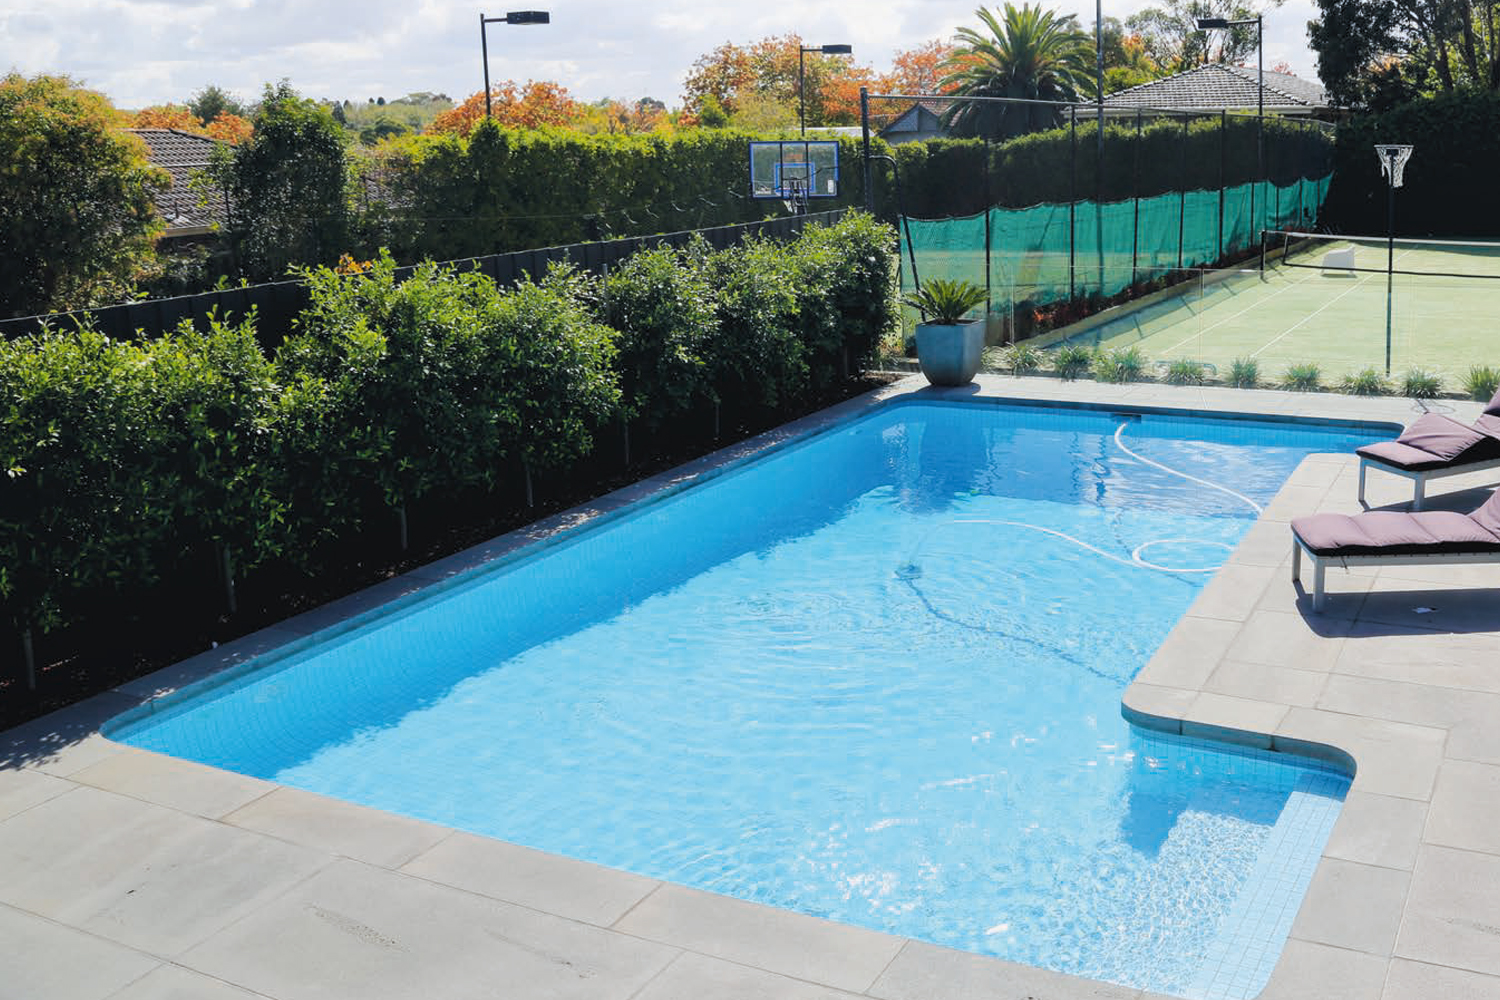 One-piece pool corner: an innovative paving solution